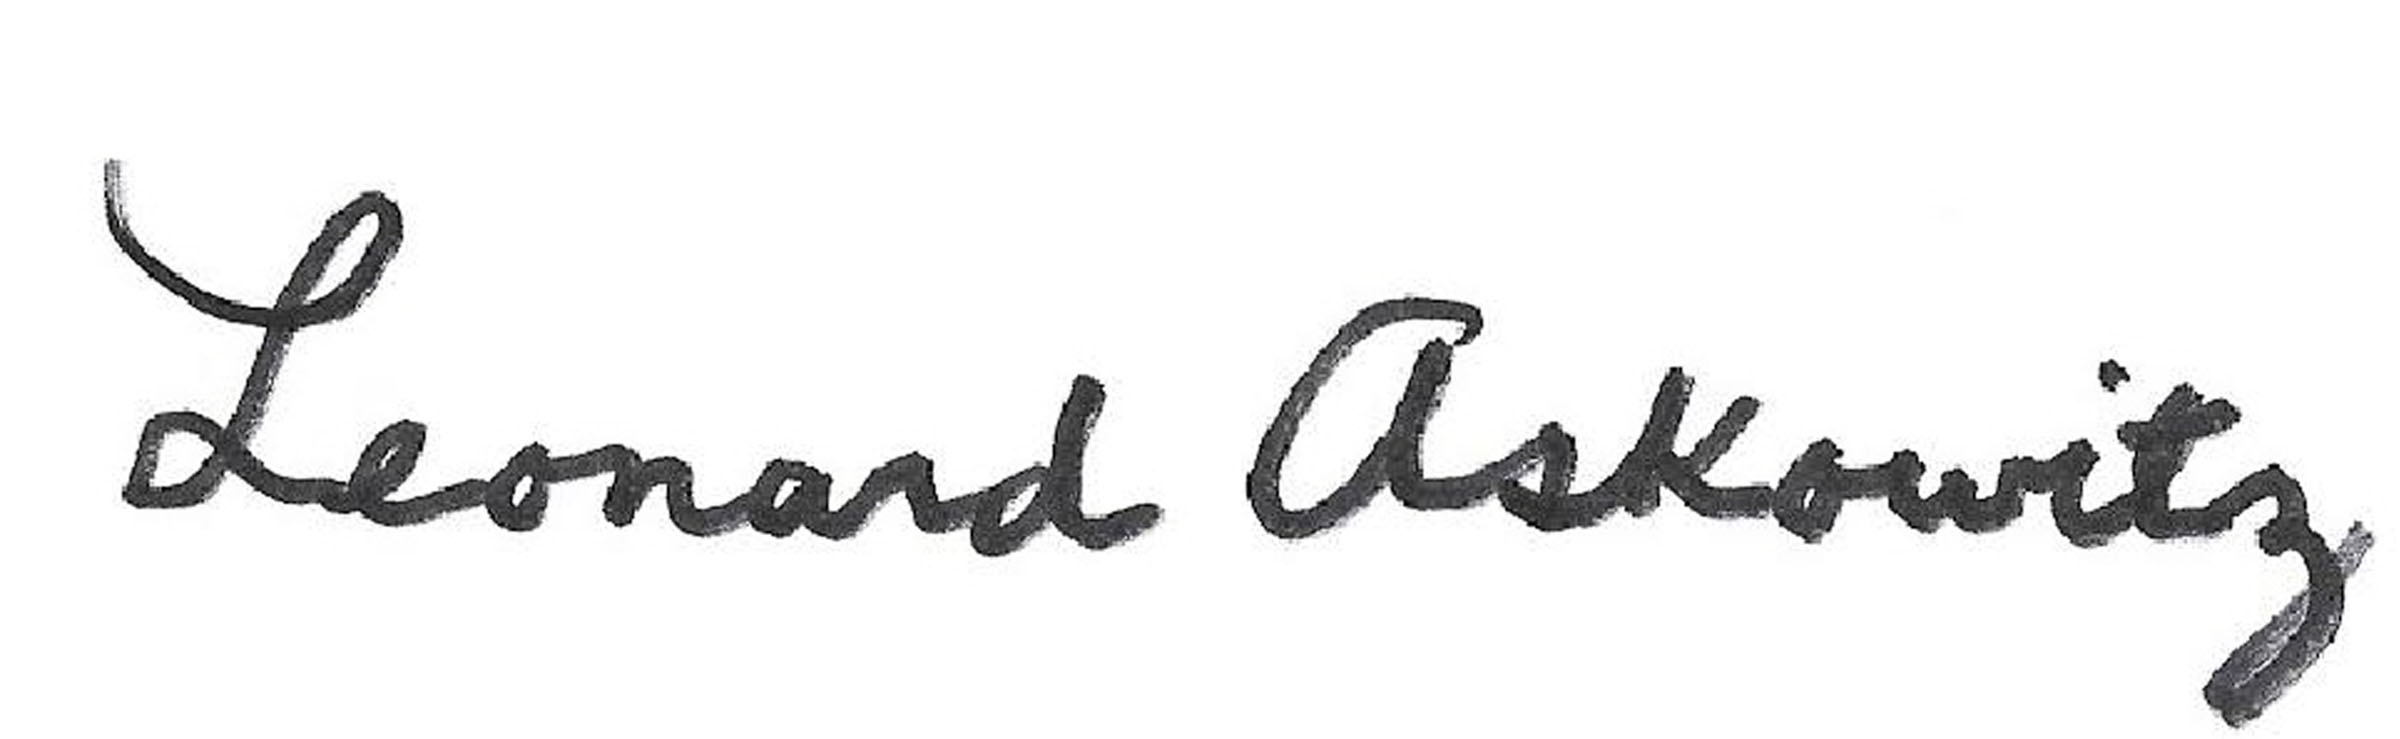 Leonard Askowitz's Signature